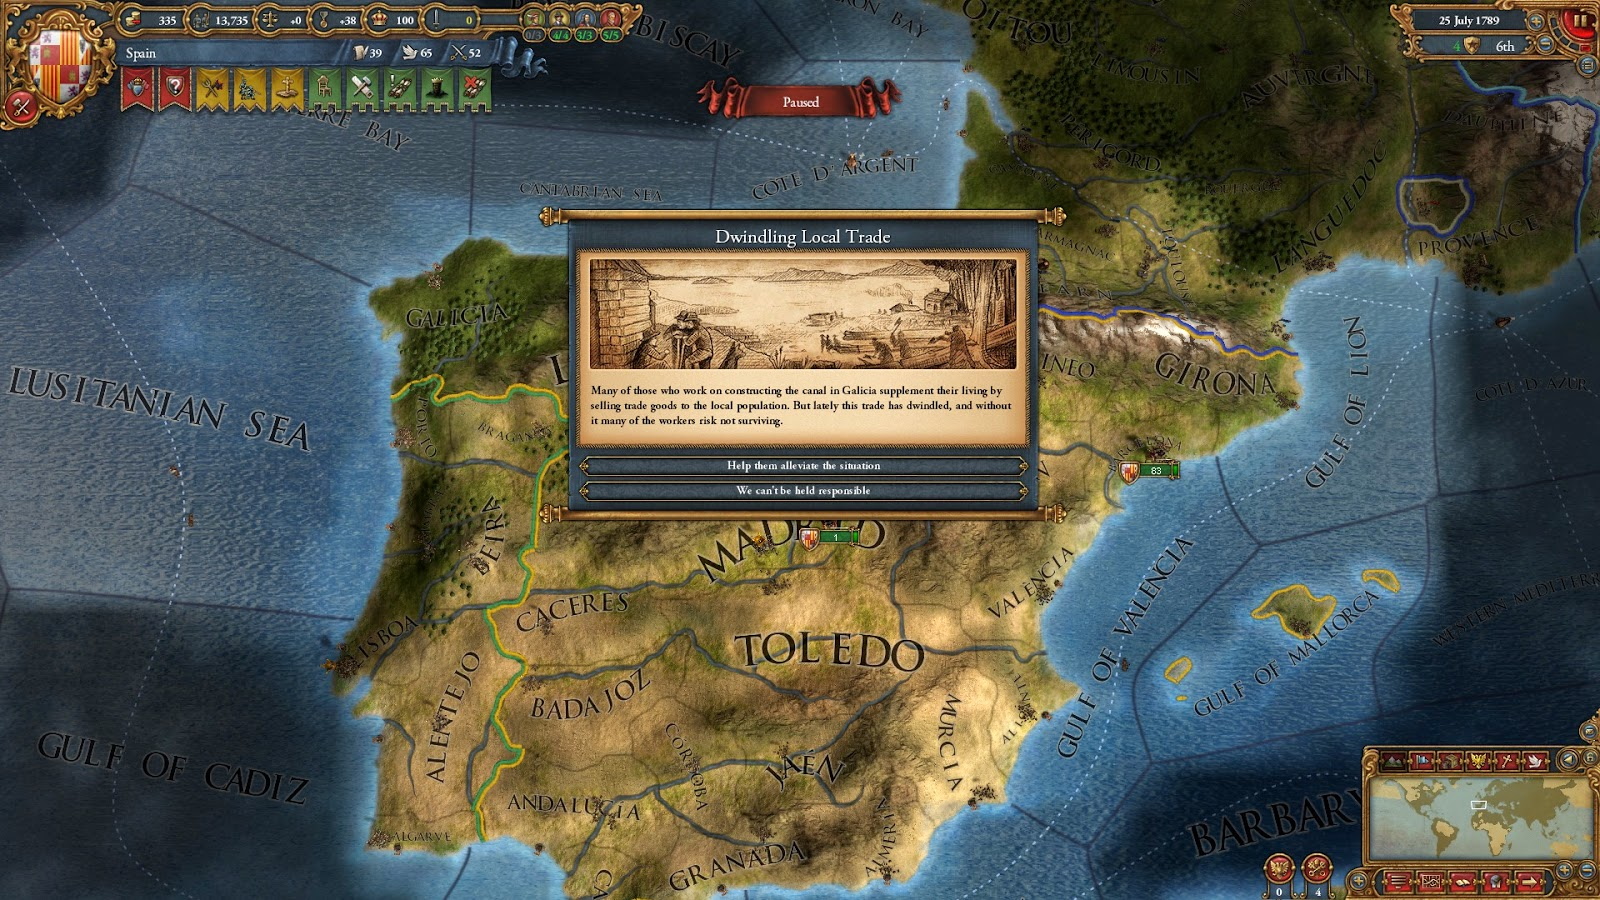 Europa Universalis IV Wealth of Nations screenshots